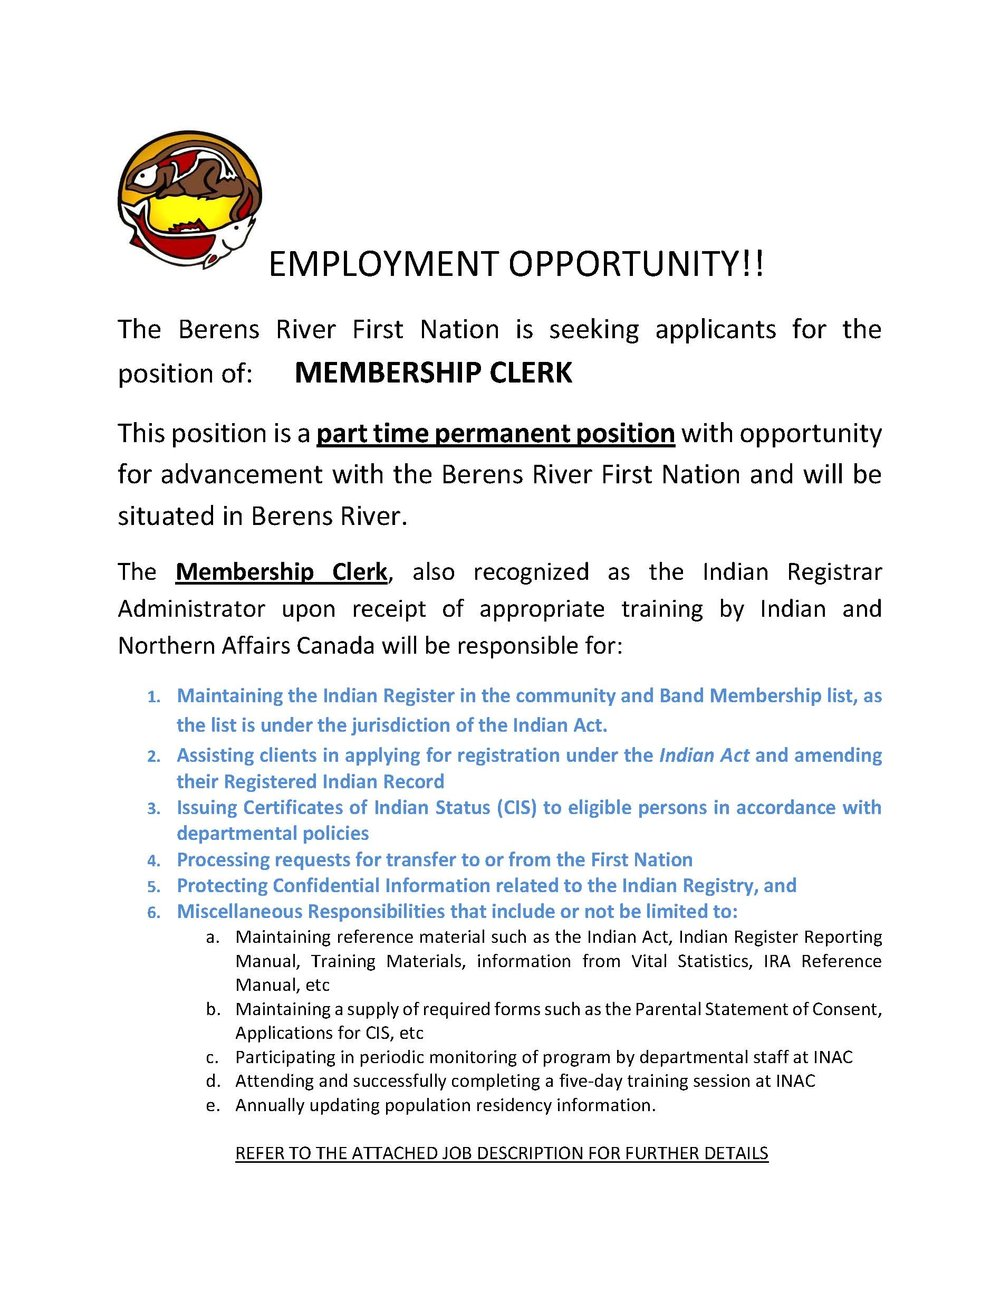 EMPLOYMENT OPPORTUNITY Membership Clerk_Page_1.jpg